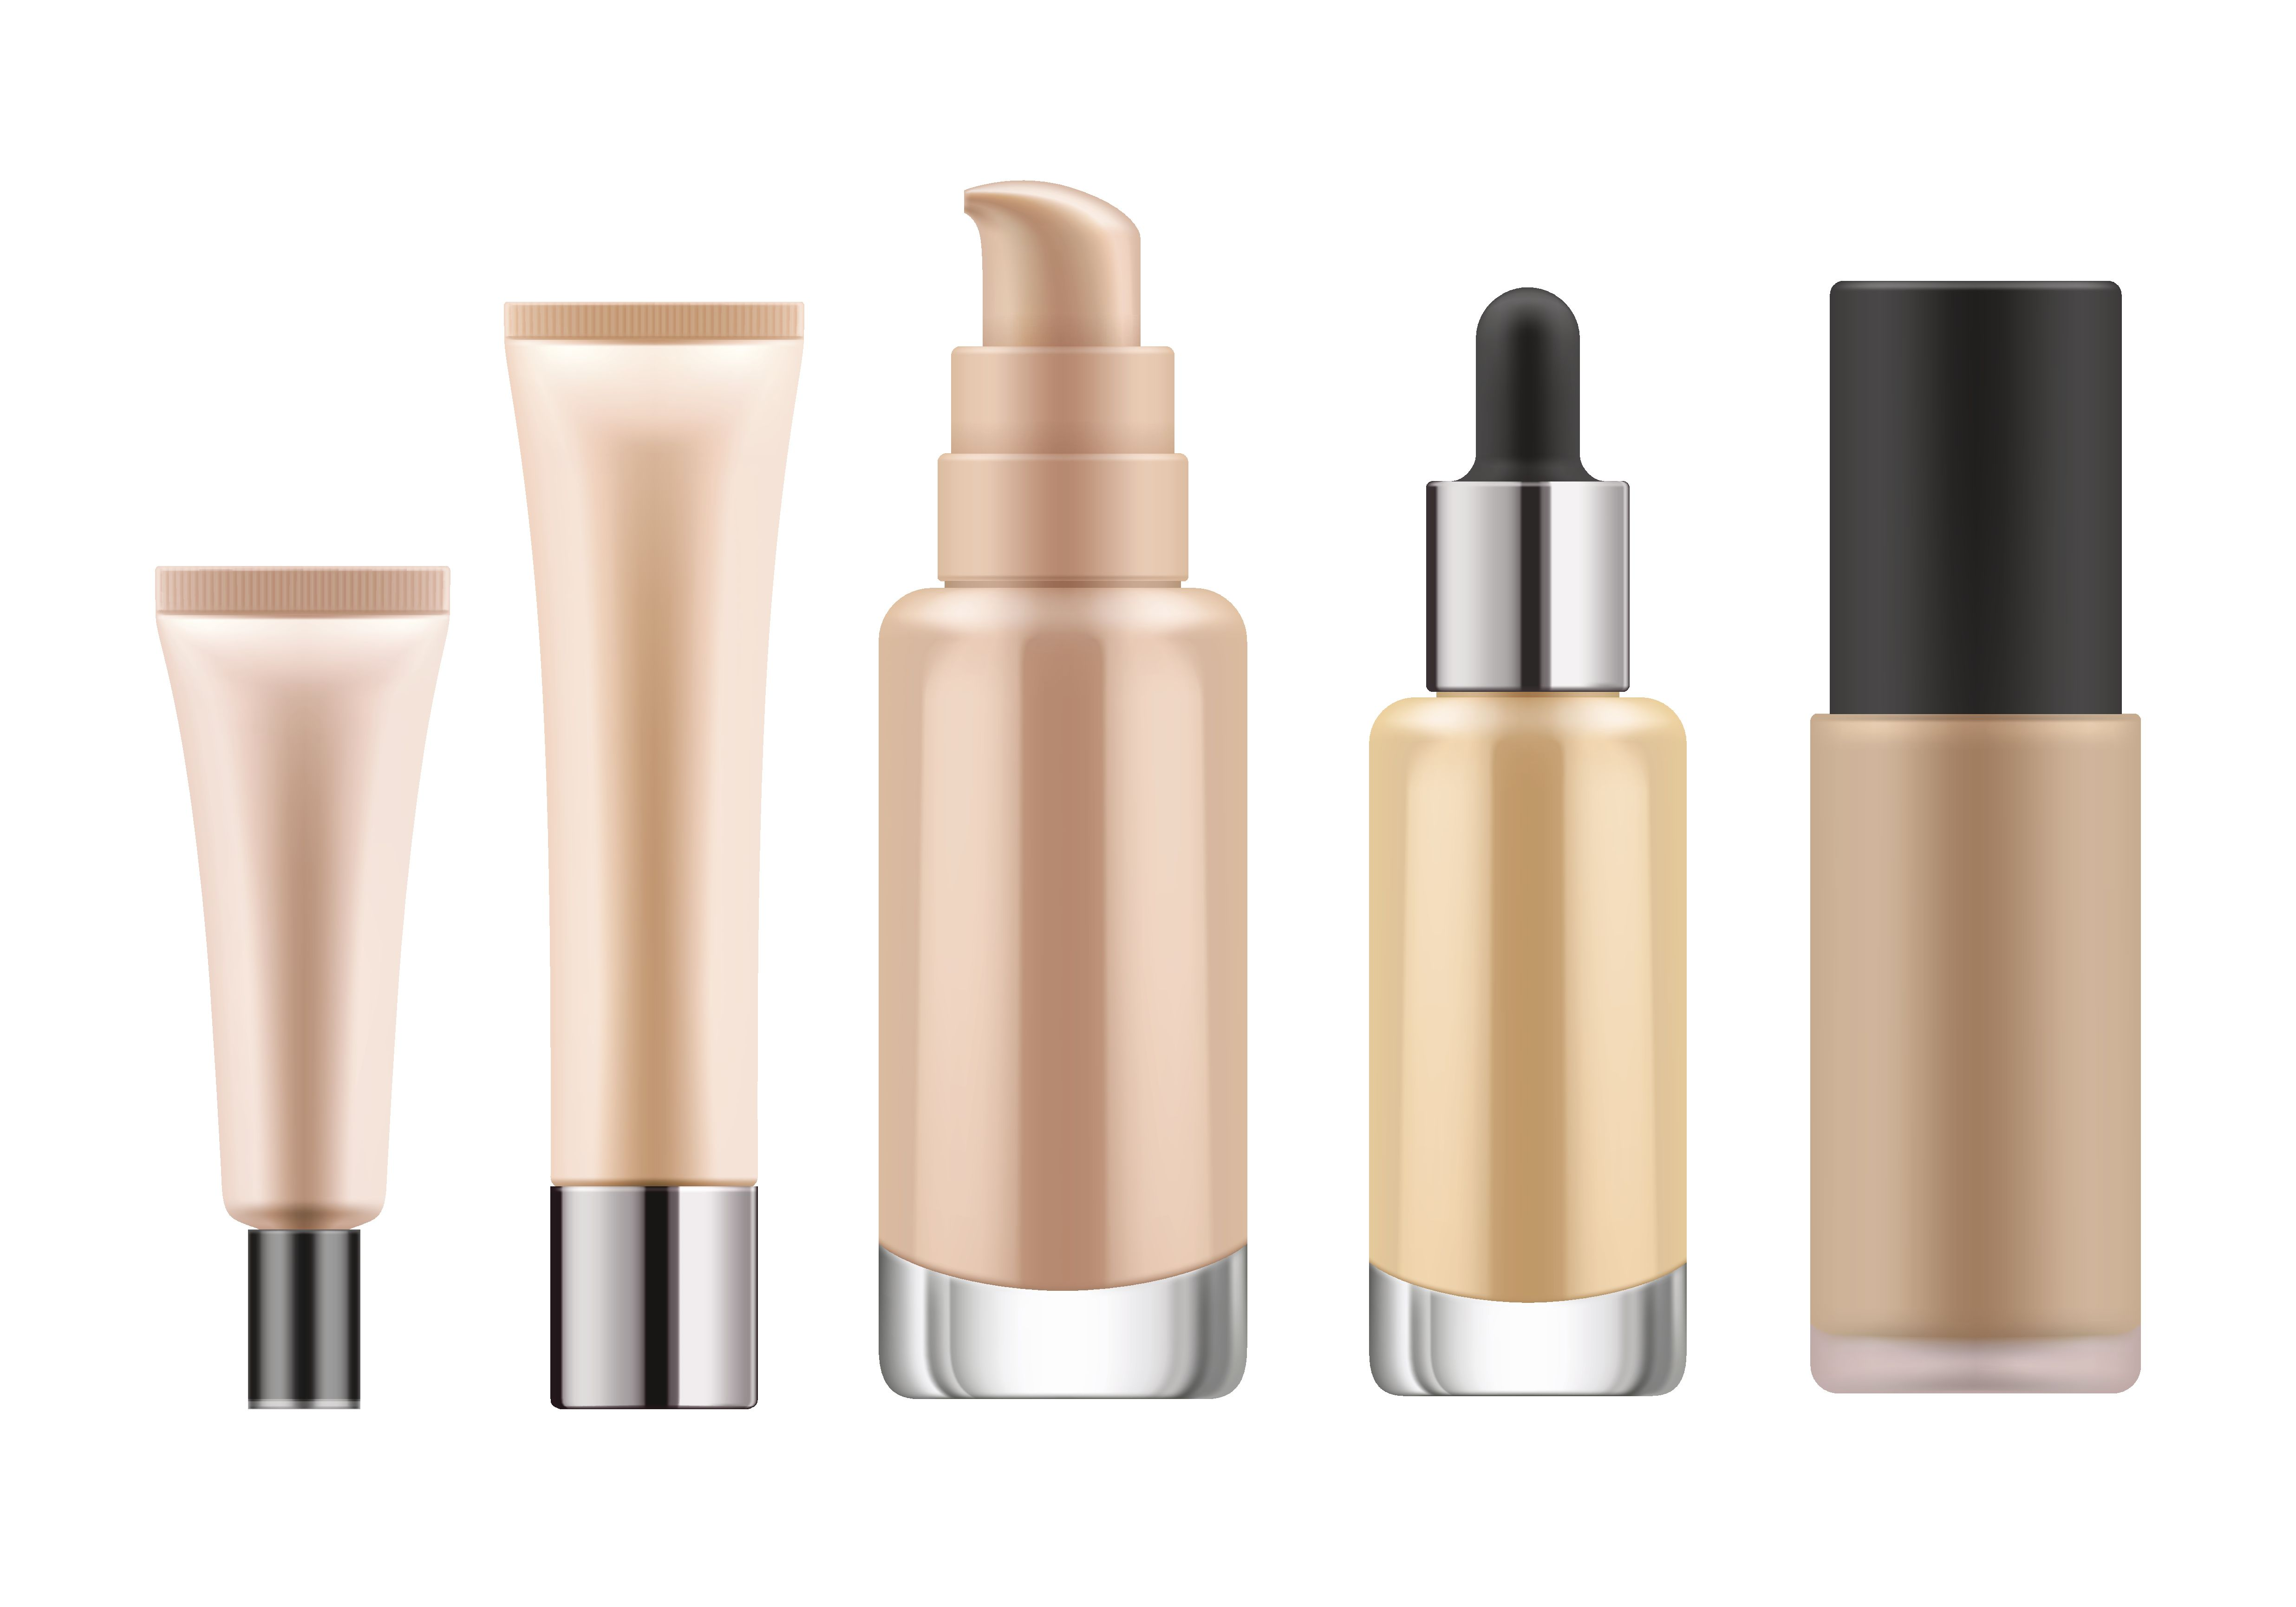 The Best Drugstore Concealers, According to Makeup Artists